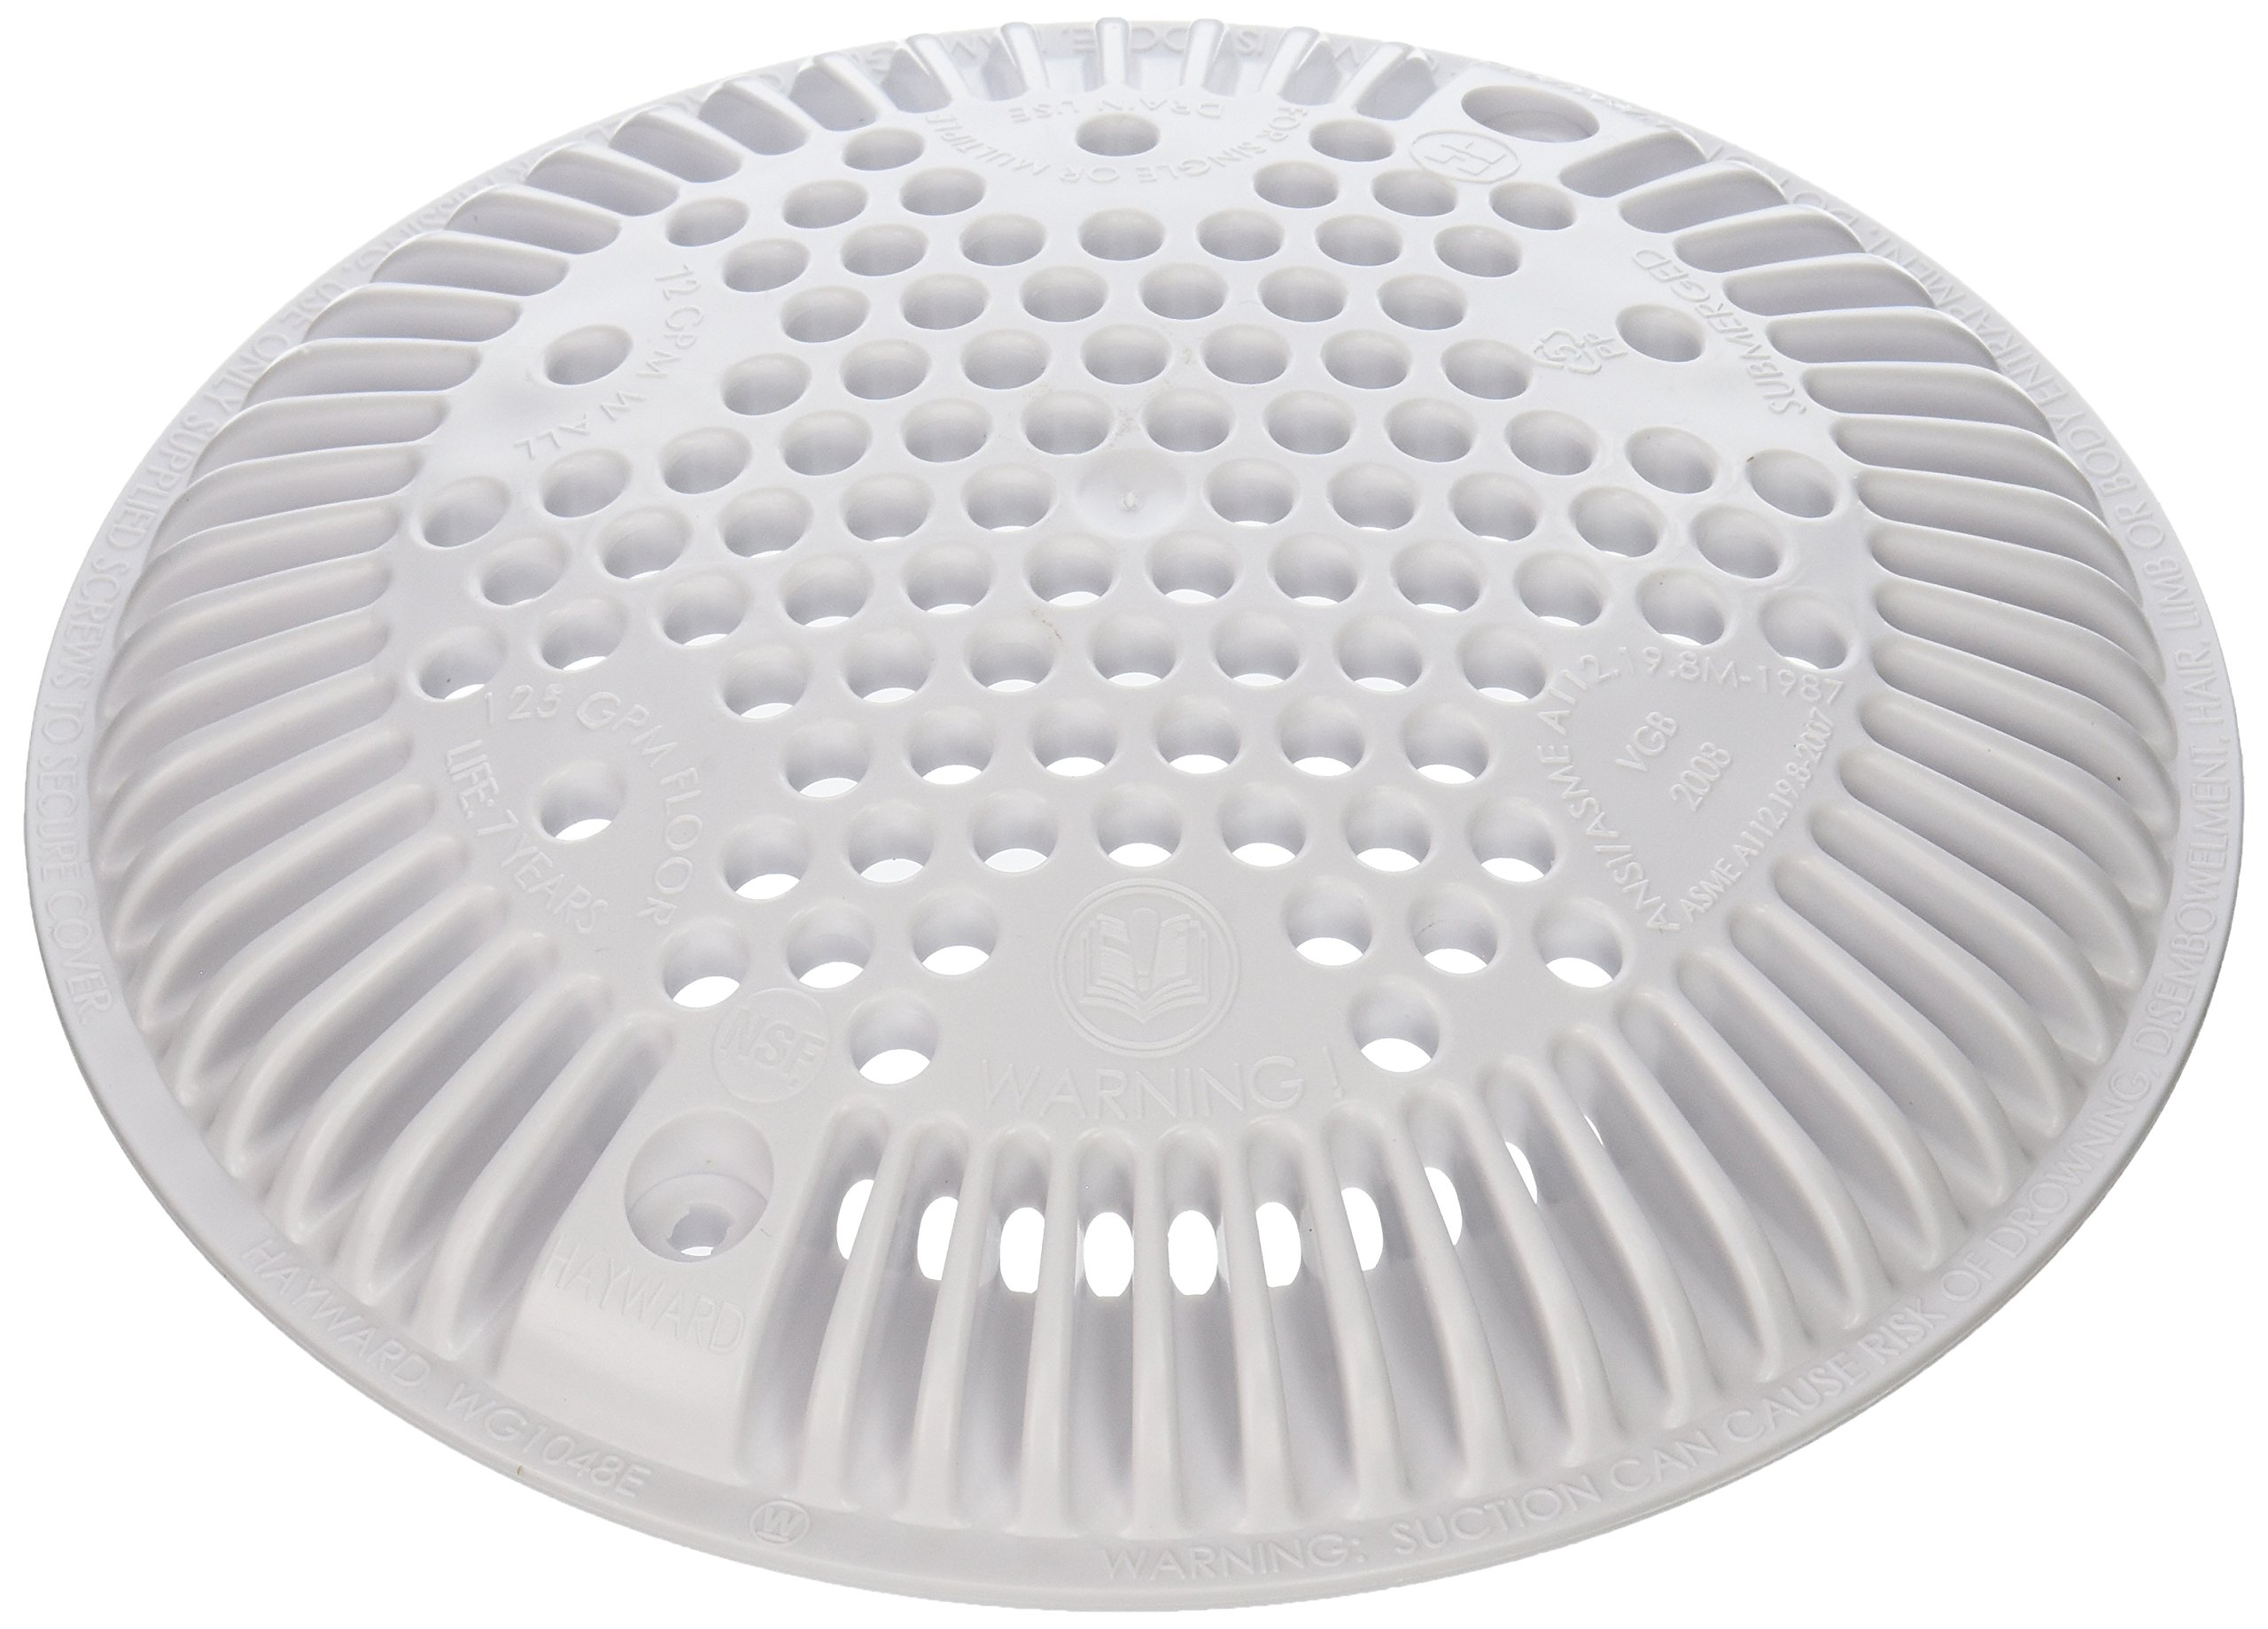 Hayward WGX1048E 8-Inch White Cover Replacement for Hayward Suction and Dual Suction Outlet